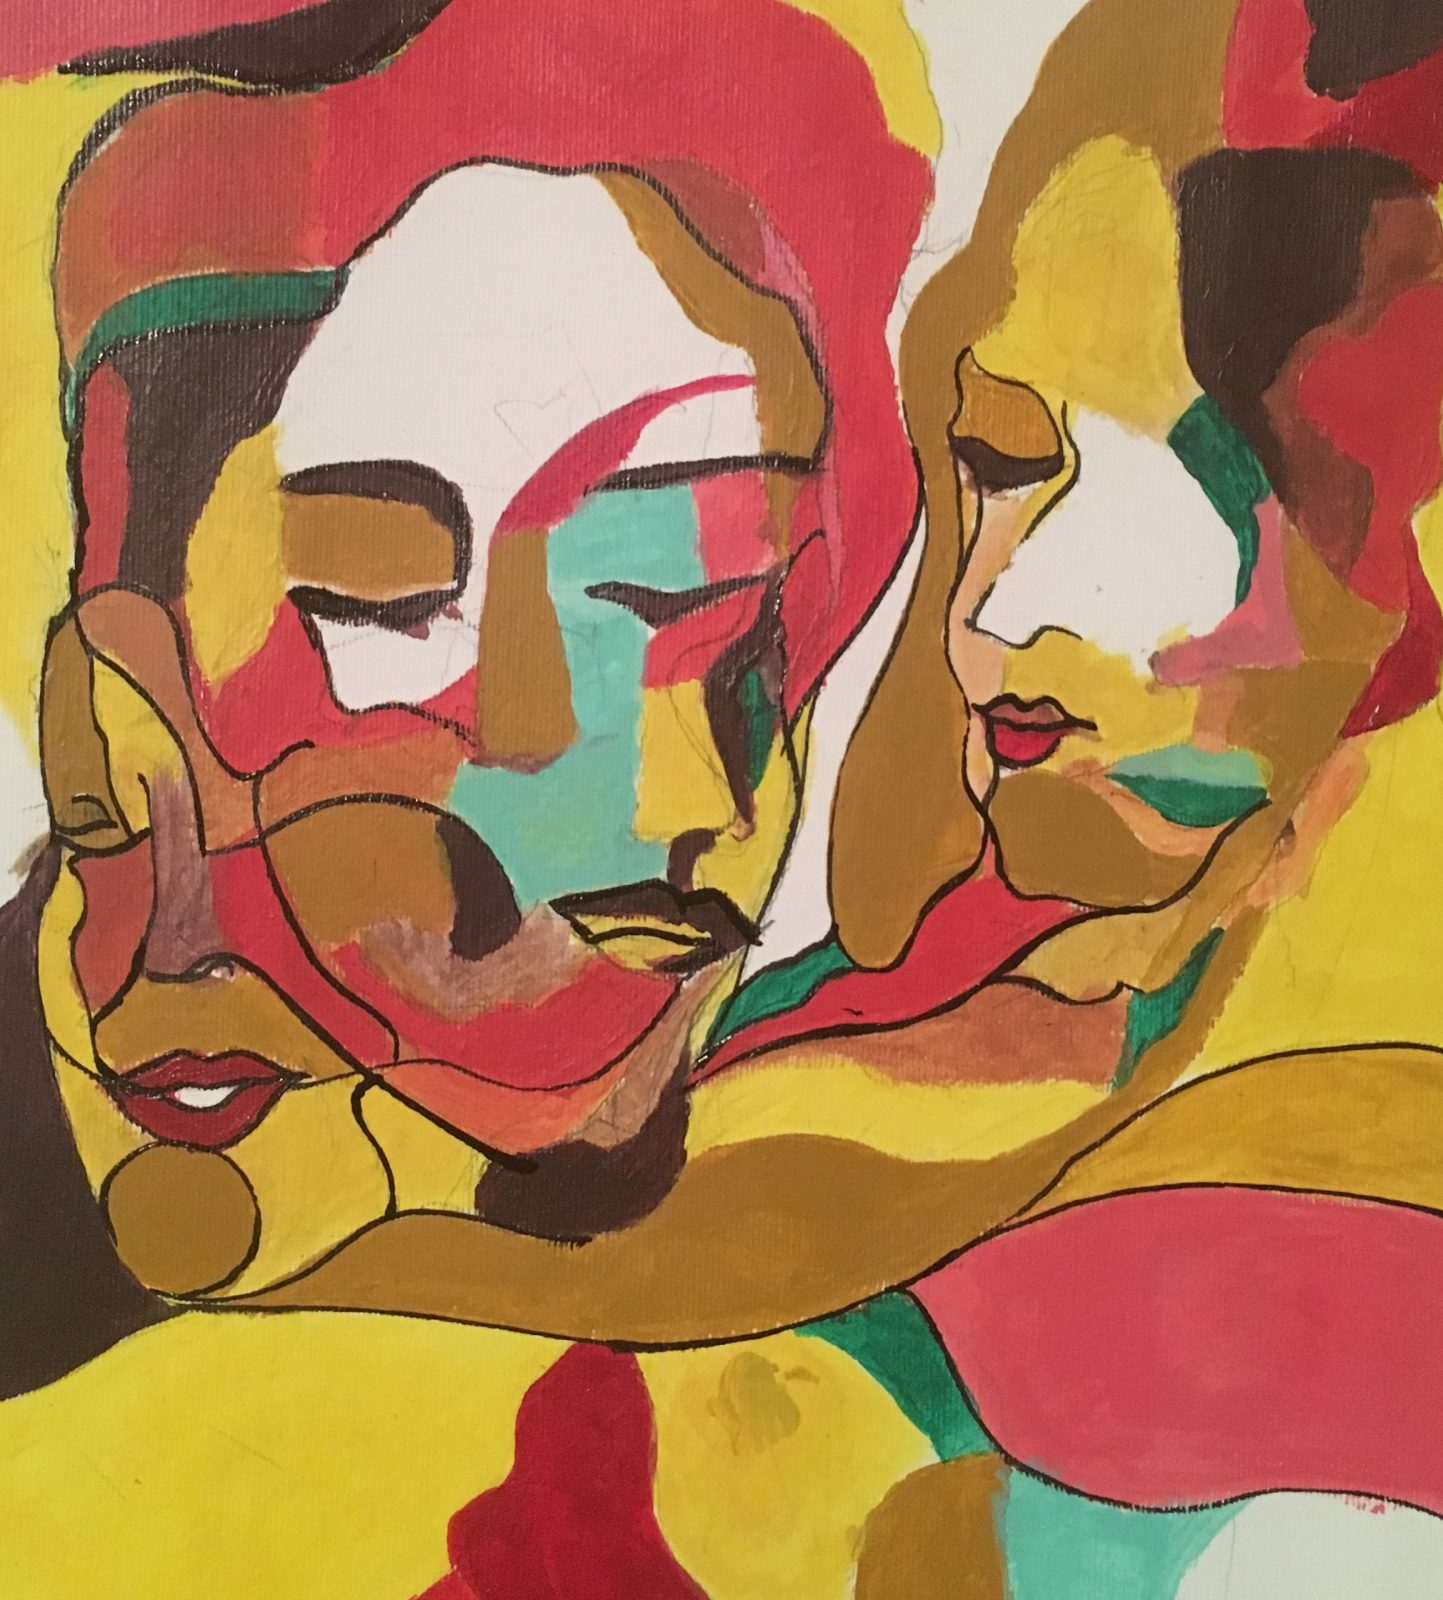 An abstract painting of faces in yellow, orange, pink, red, and teal,